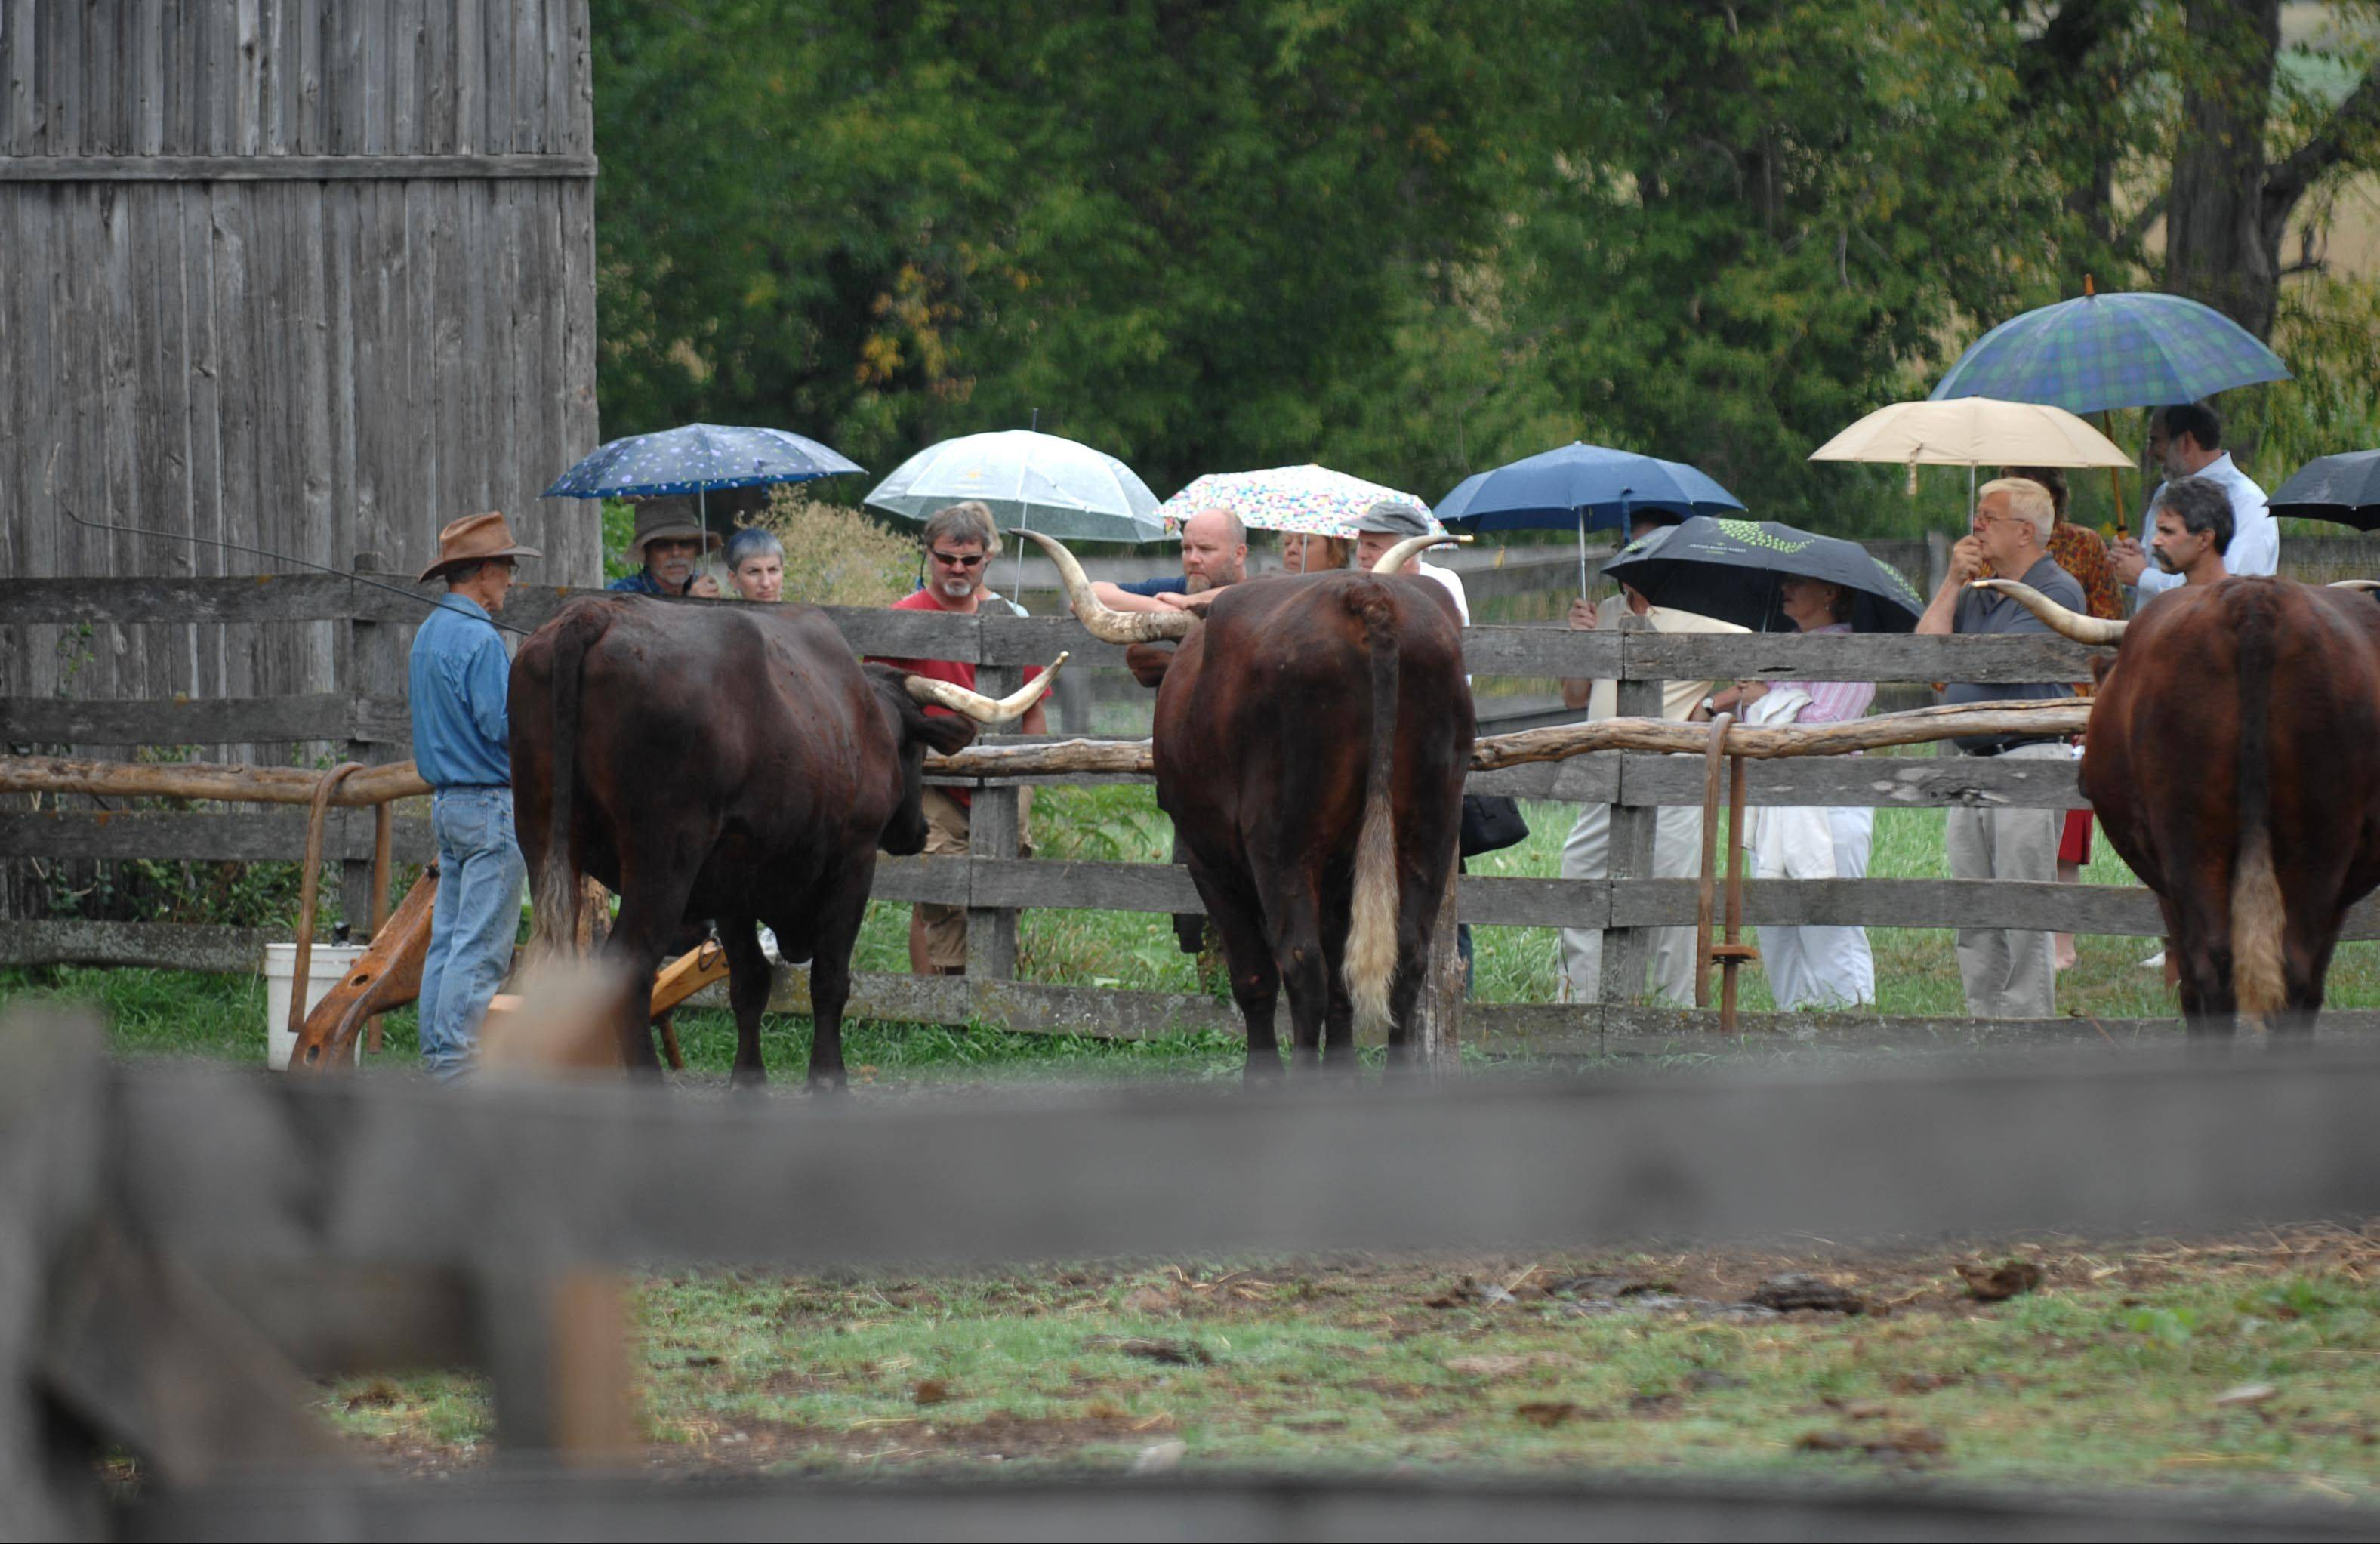 Chuck Bauer shows visitors an oxen demonstration Sunday at the 23rd Annual Heirloom Garden Show at Garfield Farm Museum west of Geneva. Bauer is a trustee of the historical farm.